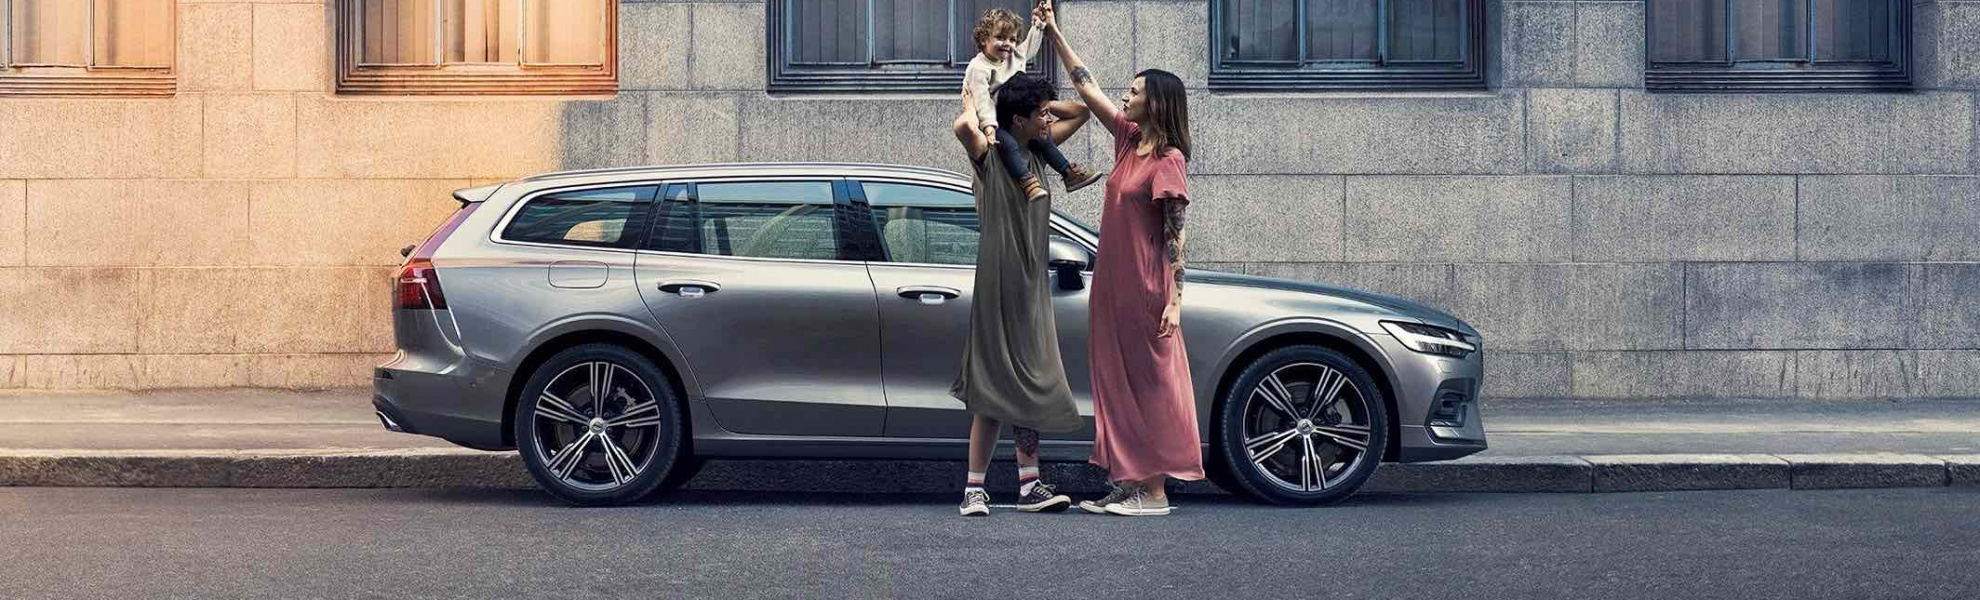 252091_Volvo_Cars_introduces_six_months_paid_parental_leave_for_EMEA_region.jpg